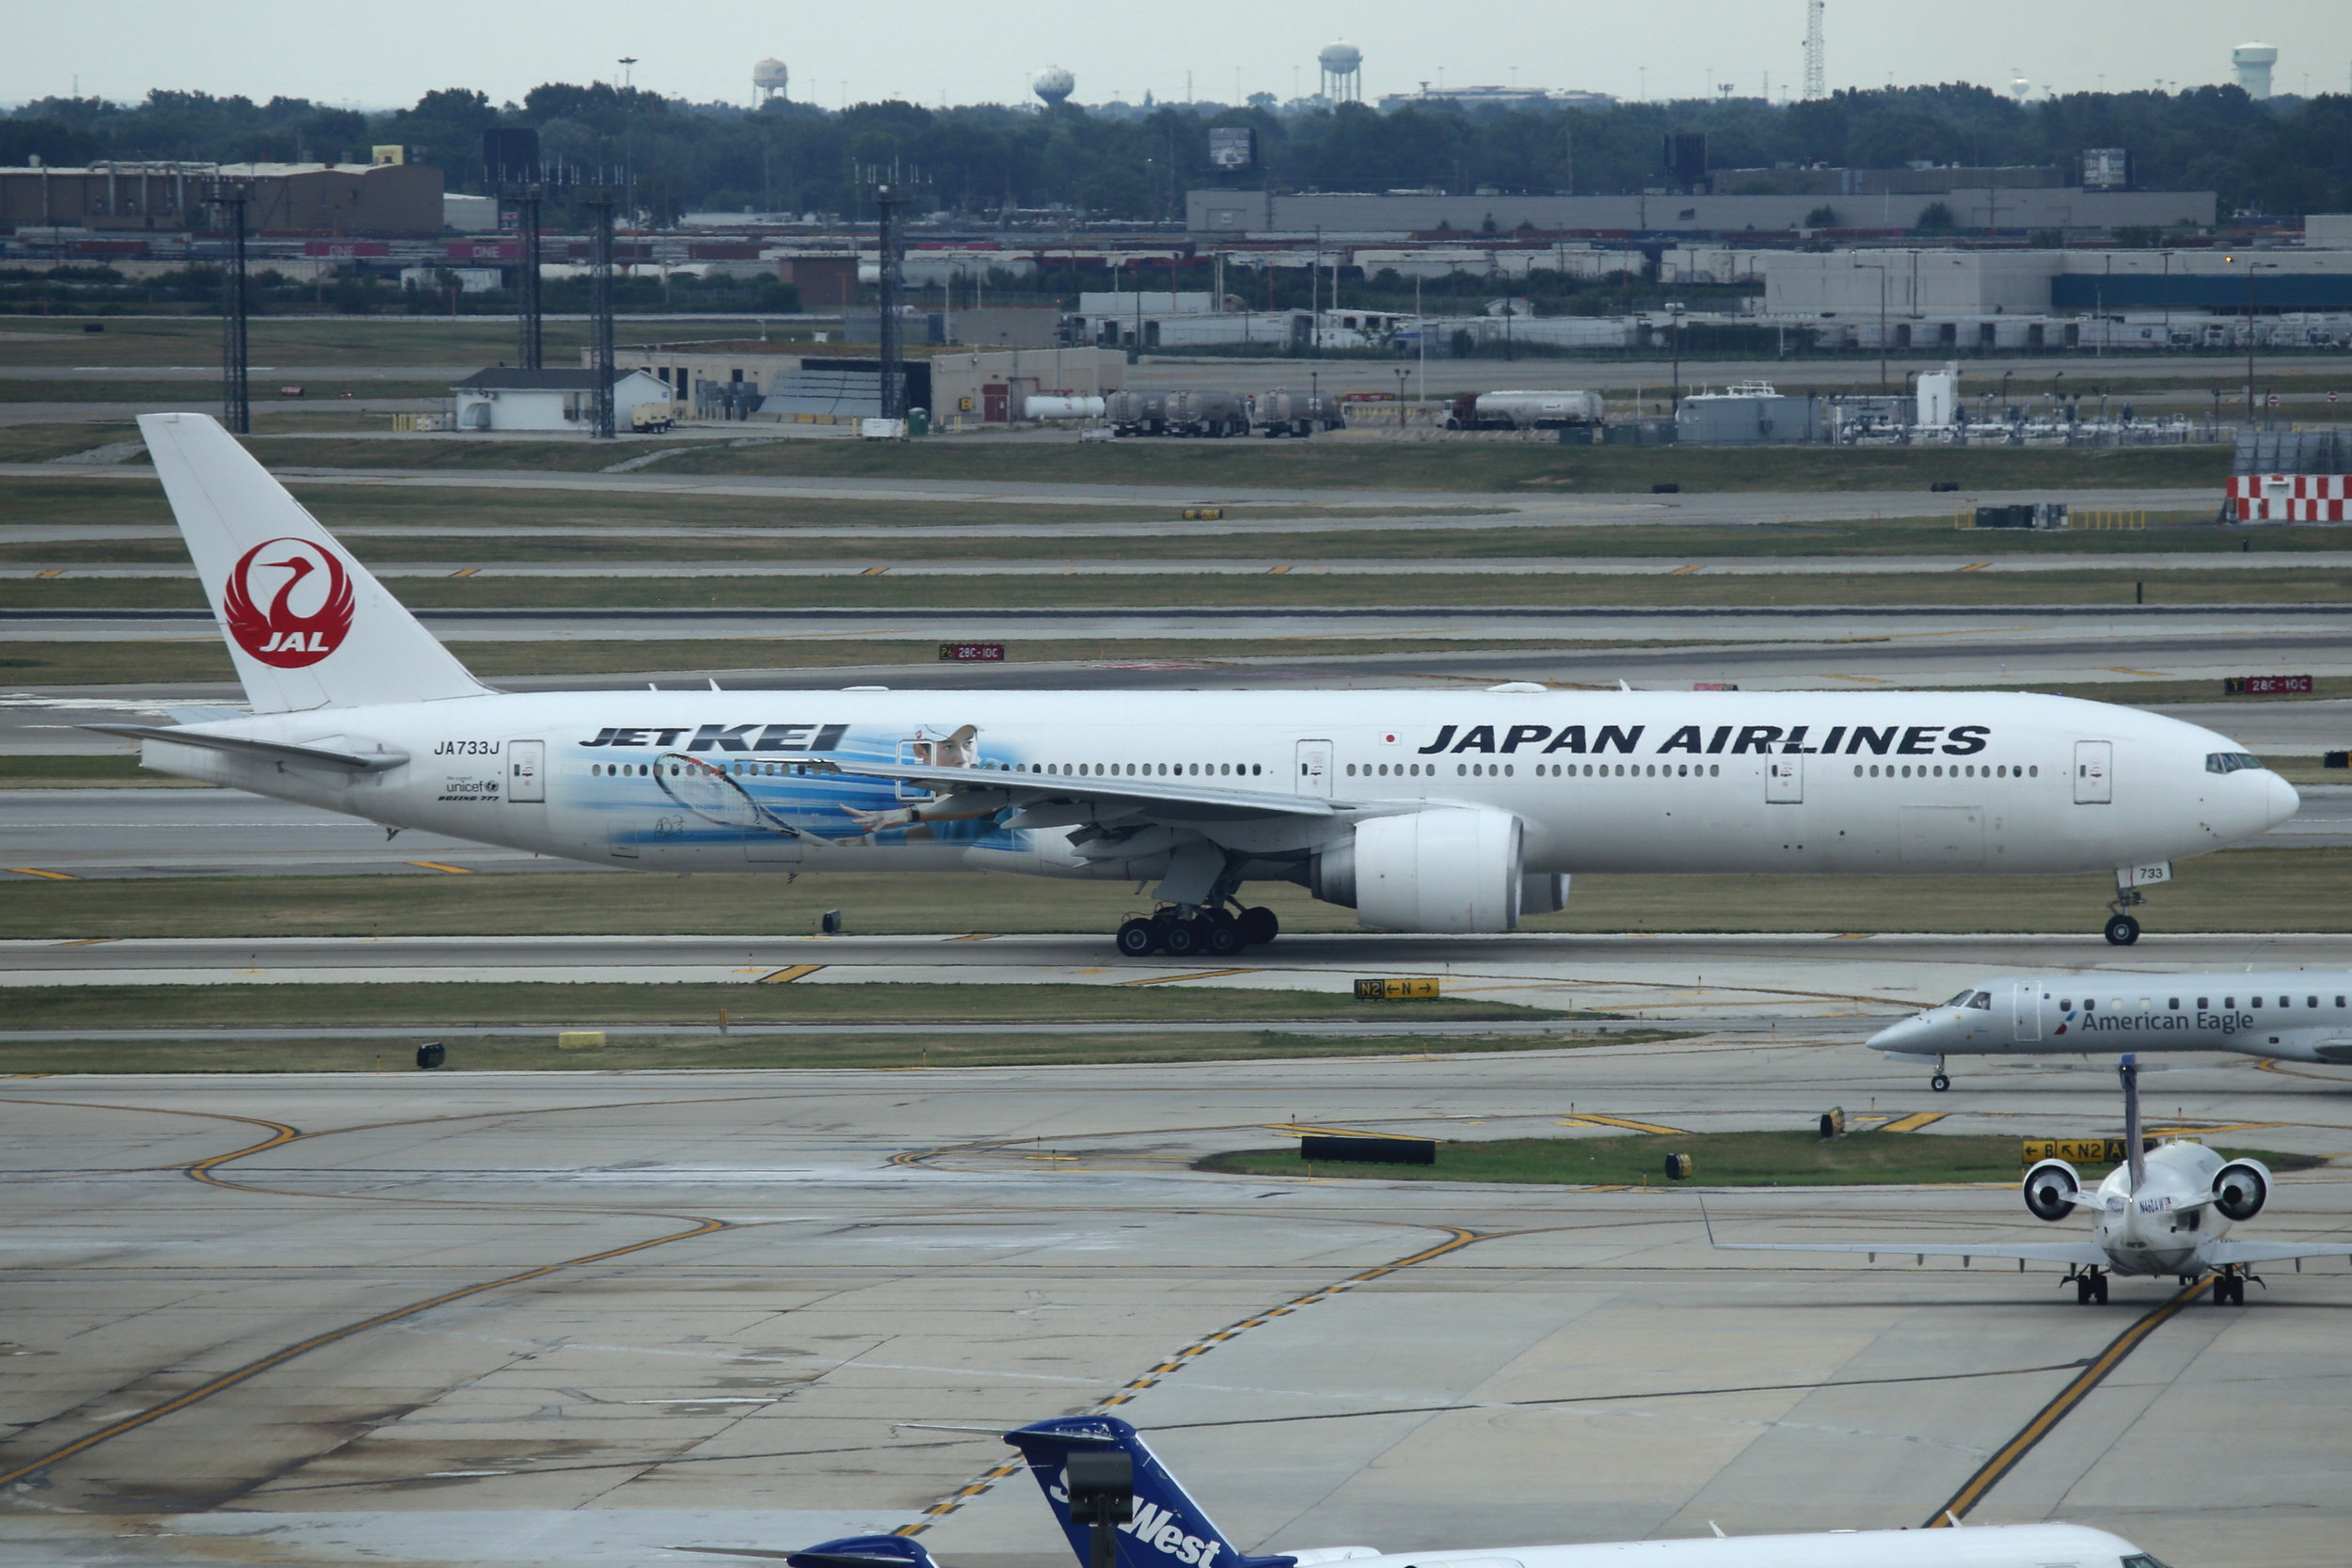 """JA733J Japan Airlines """"JET KEI"""" B777-3 taken from Hilton Hotel at Chicago O'Hare Airport 21st July by John Wood"""